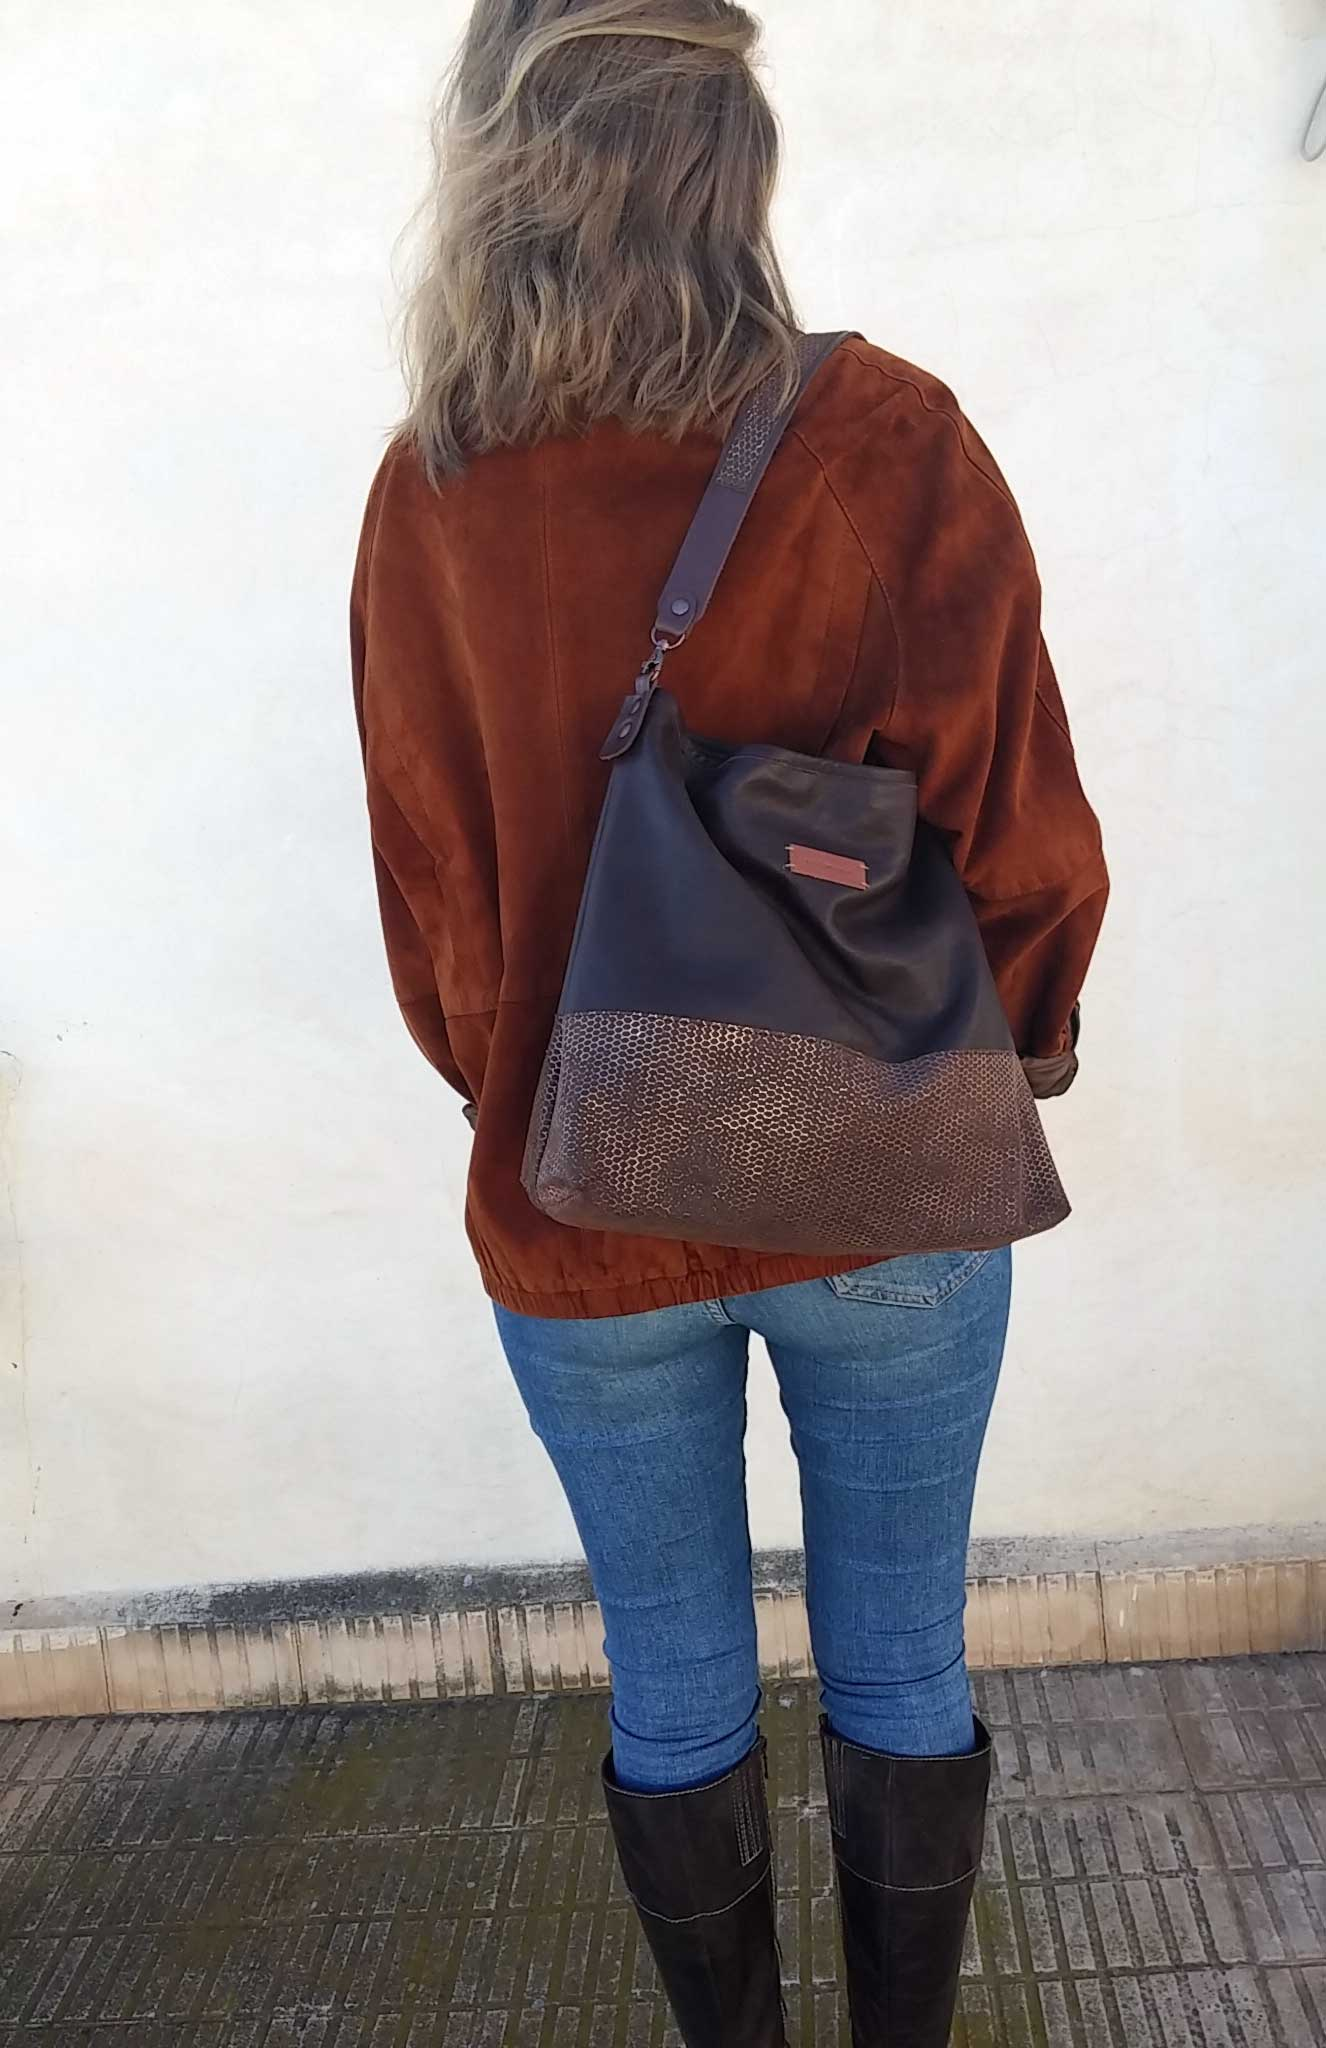 hobo bag proportions